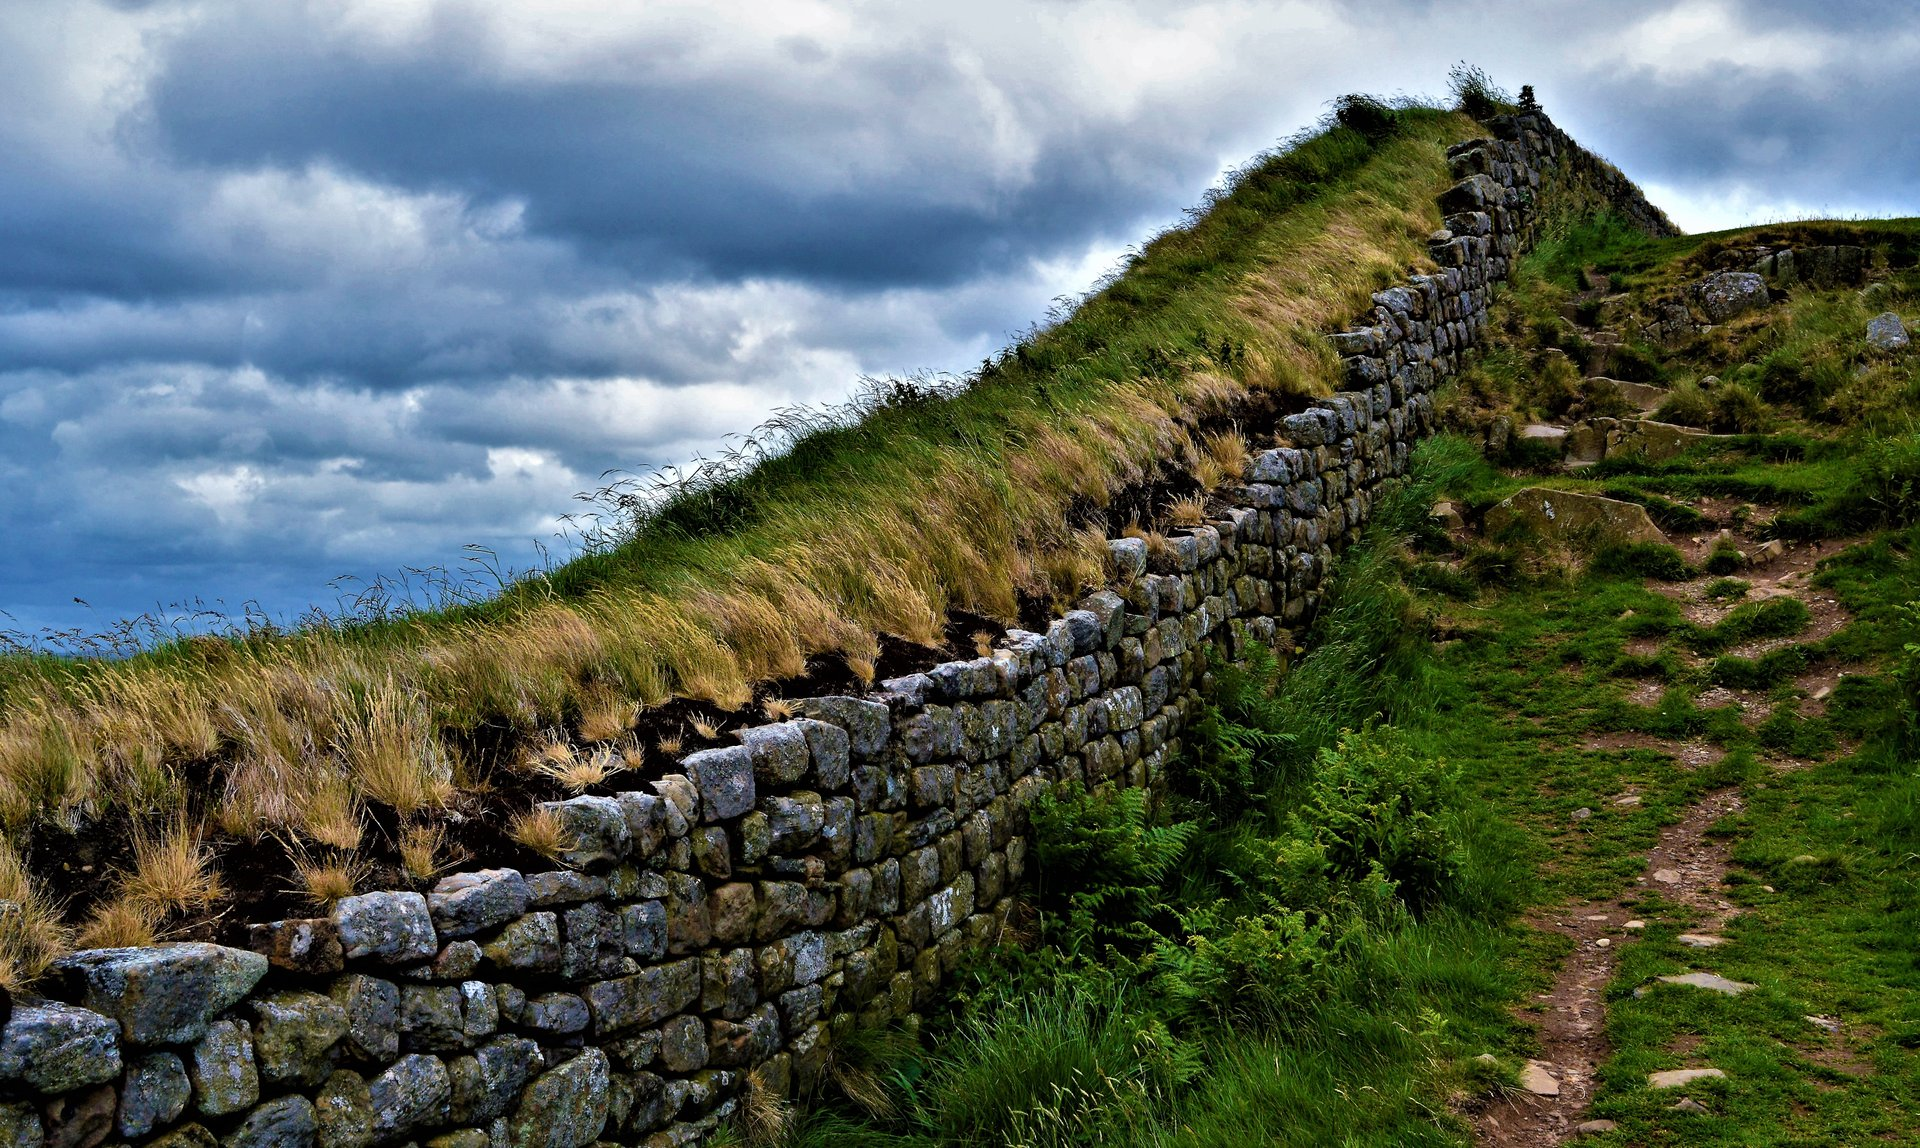 Hadrian's Wall in England 2019 - Best Time